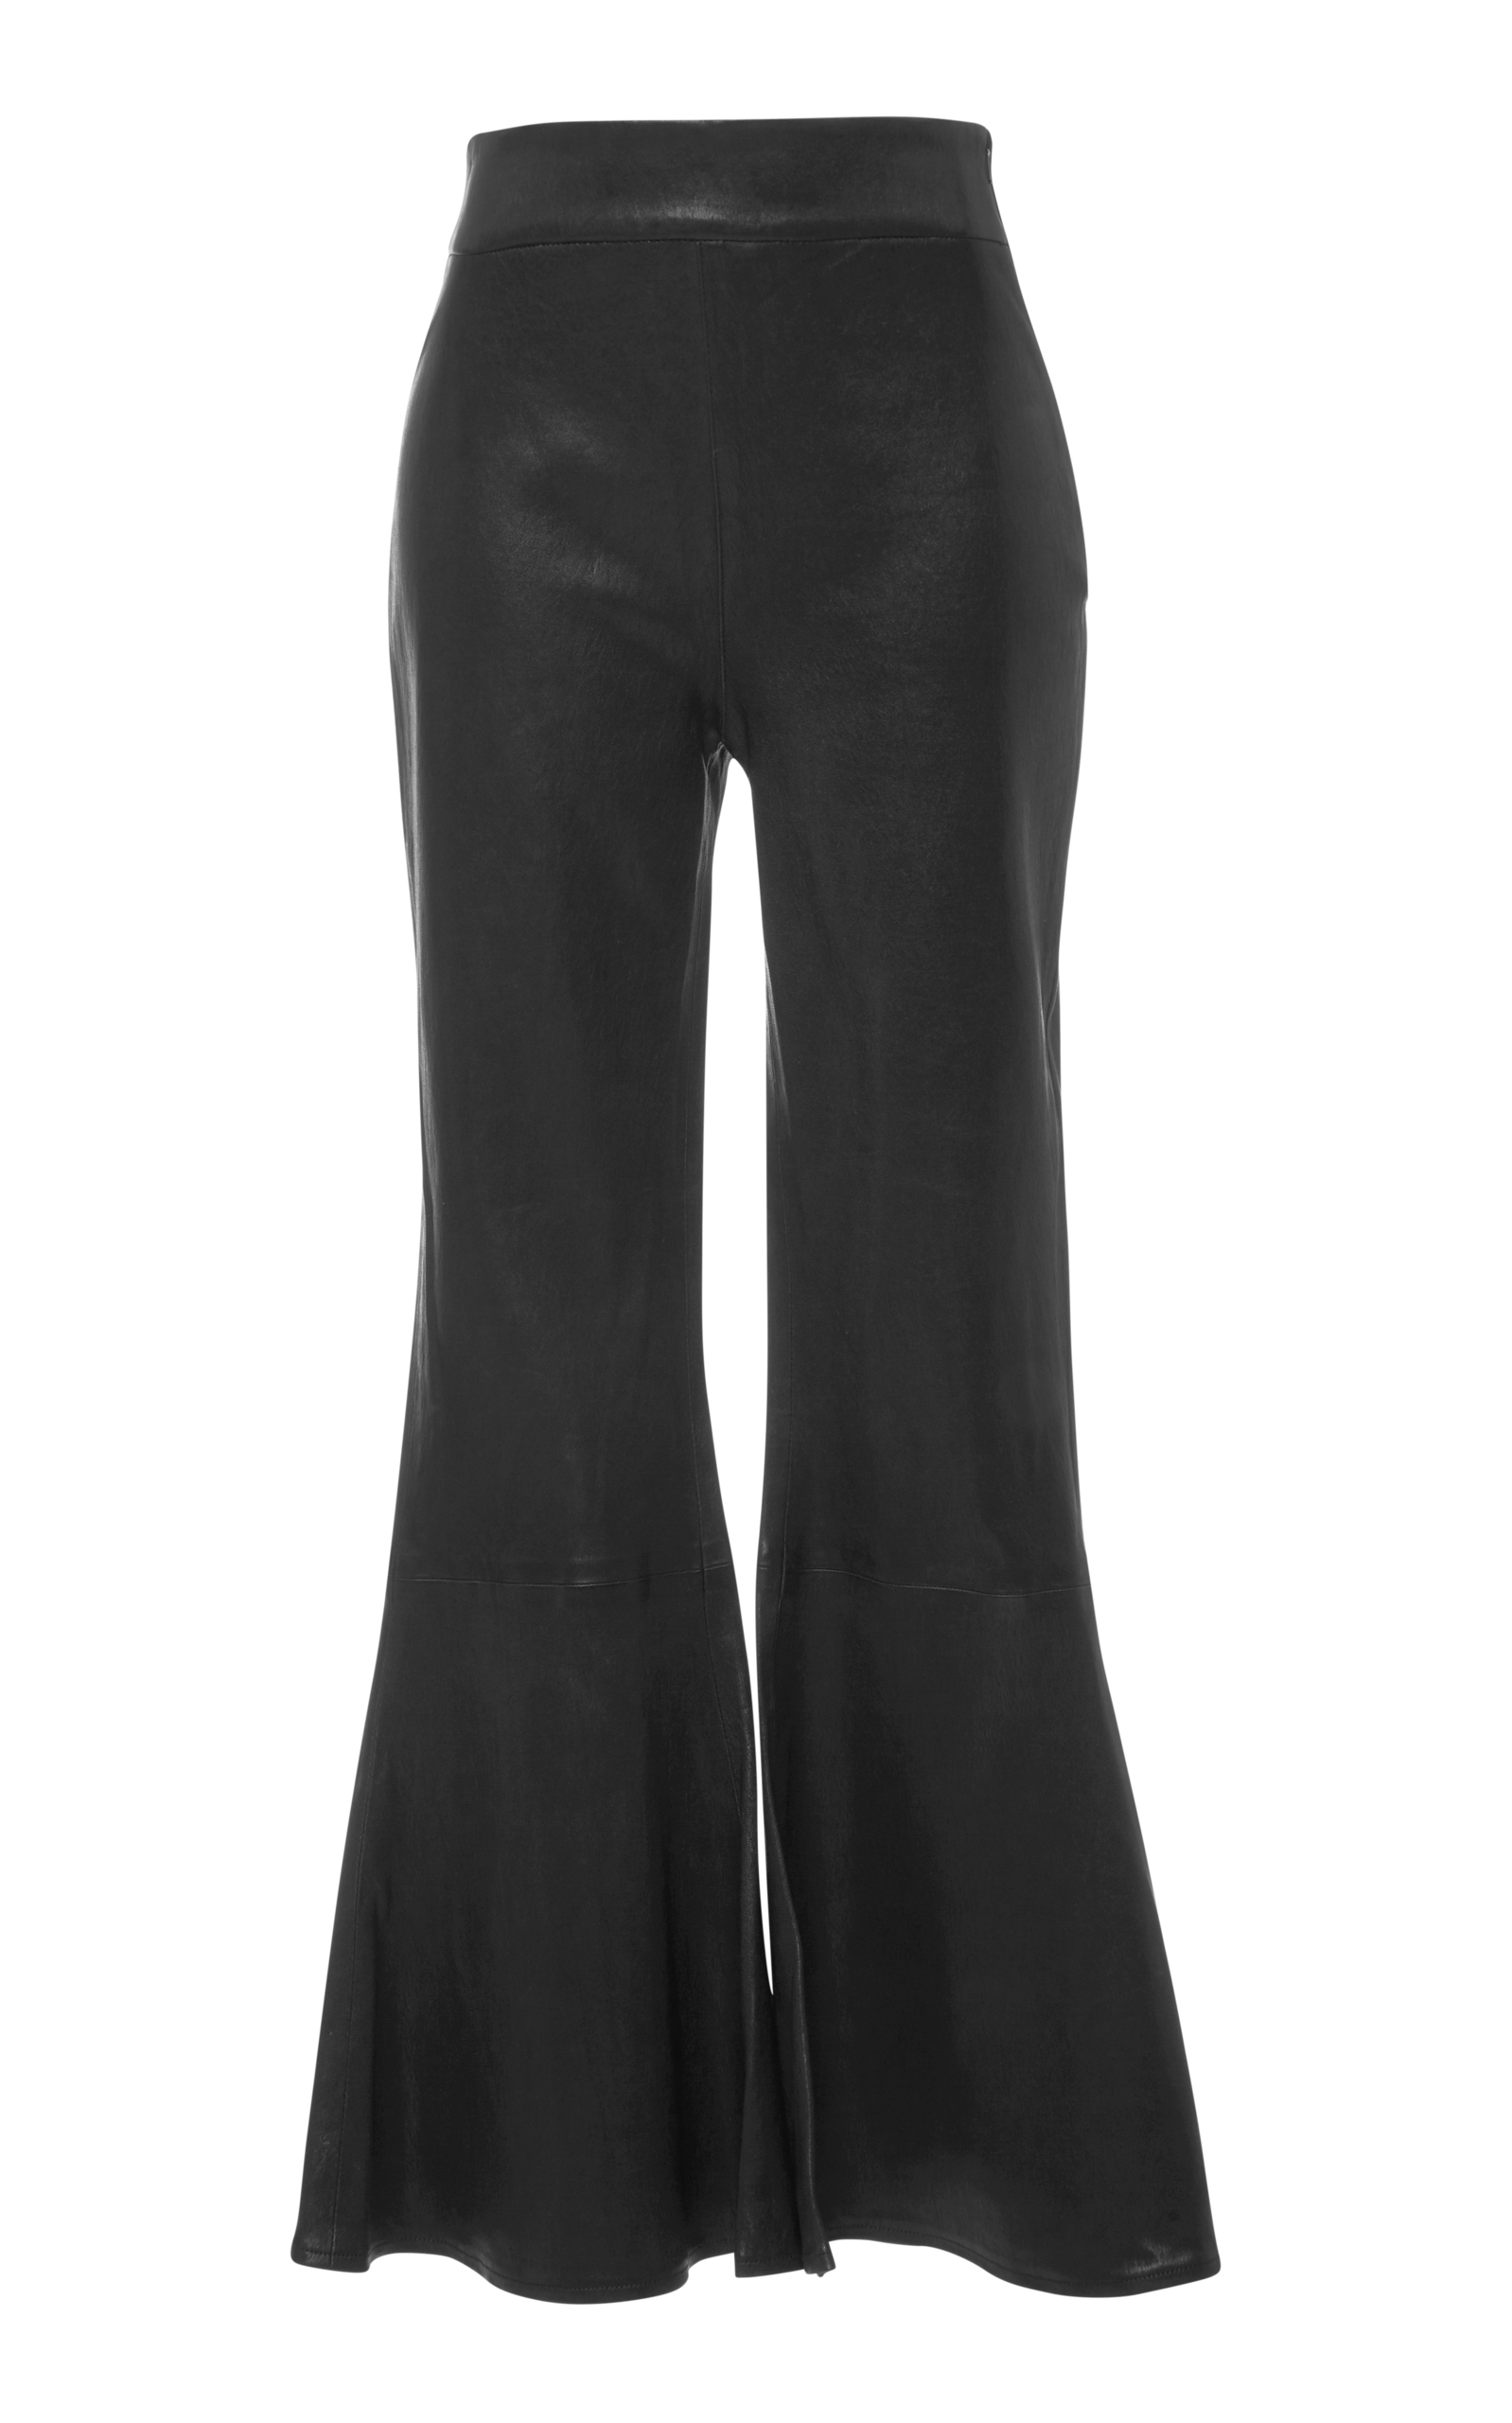 Leather Cropped Flared Pants Frame Denim Wholesale Price Cheap Online dYxWbNt